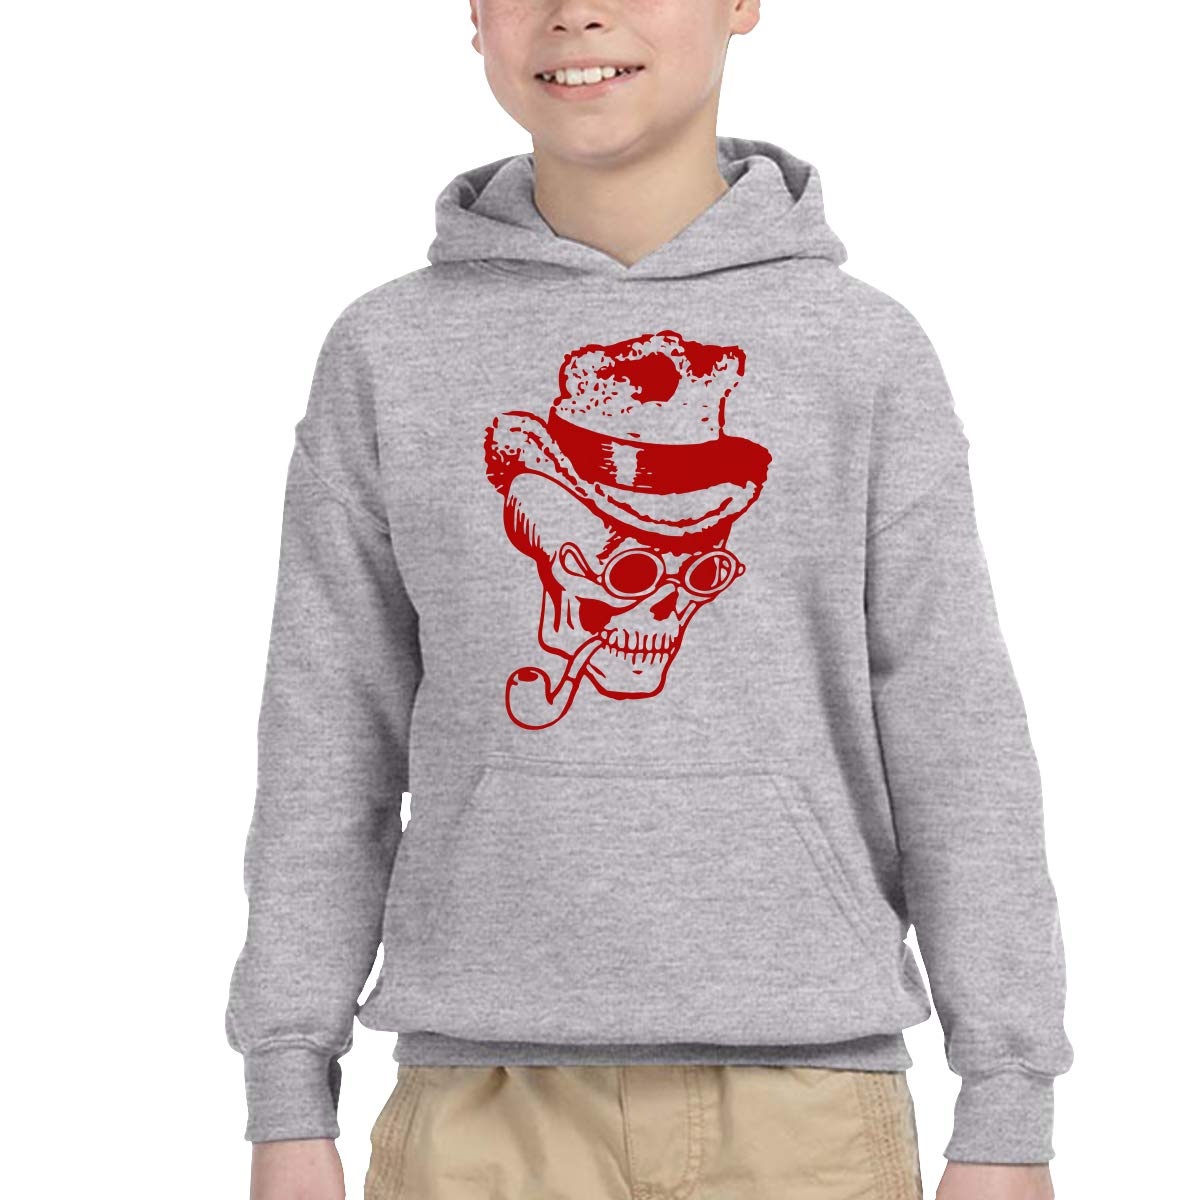 WER7 Baby Girls Boys Casual Hooded Sweatshirt Infant Toddler Cotton Hoodies Pockets